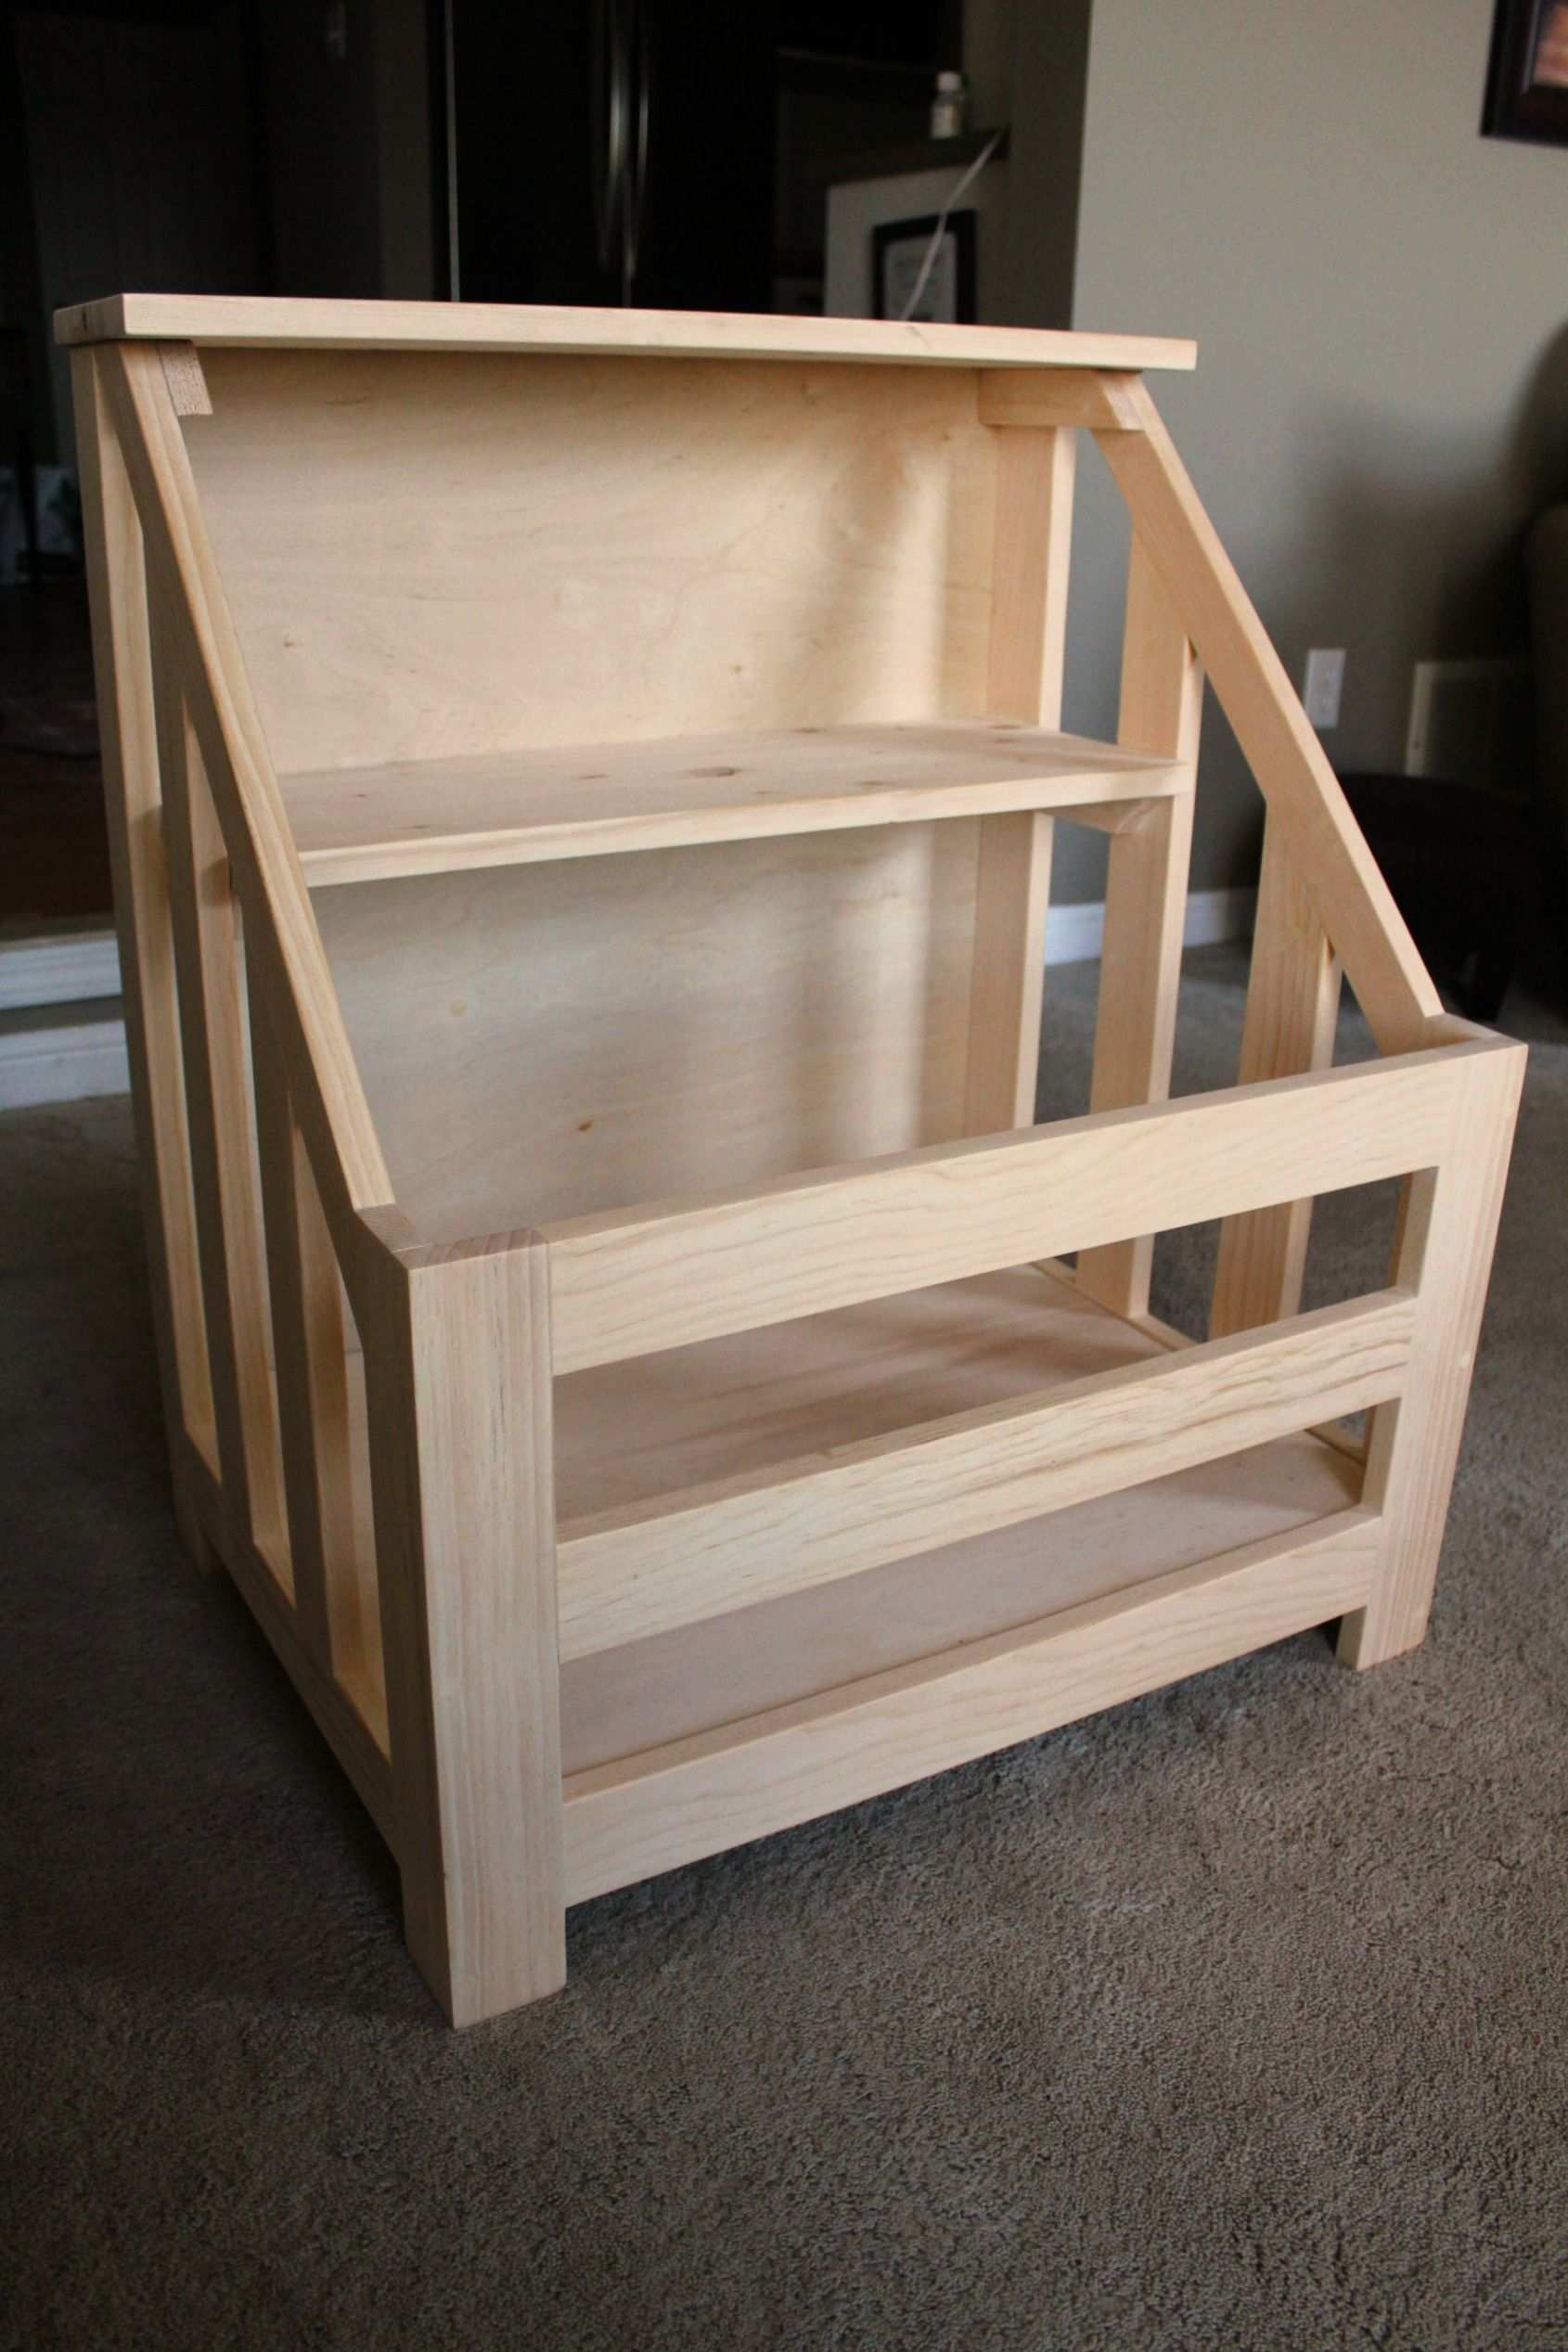 Toy Box With Bookshelf Diy Toy Box Bookshelf I Plan To Recreate This Using Pallet Wood